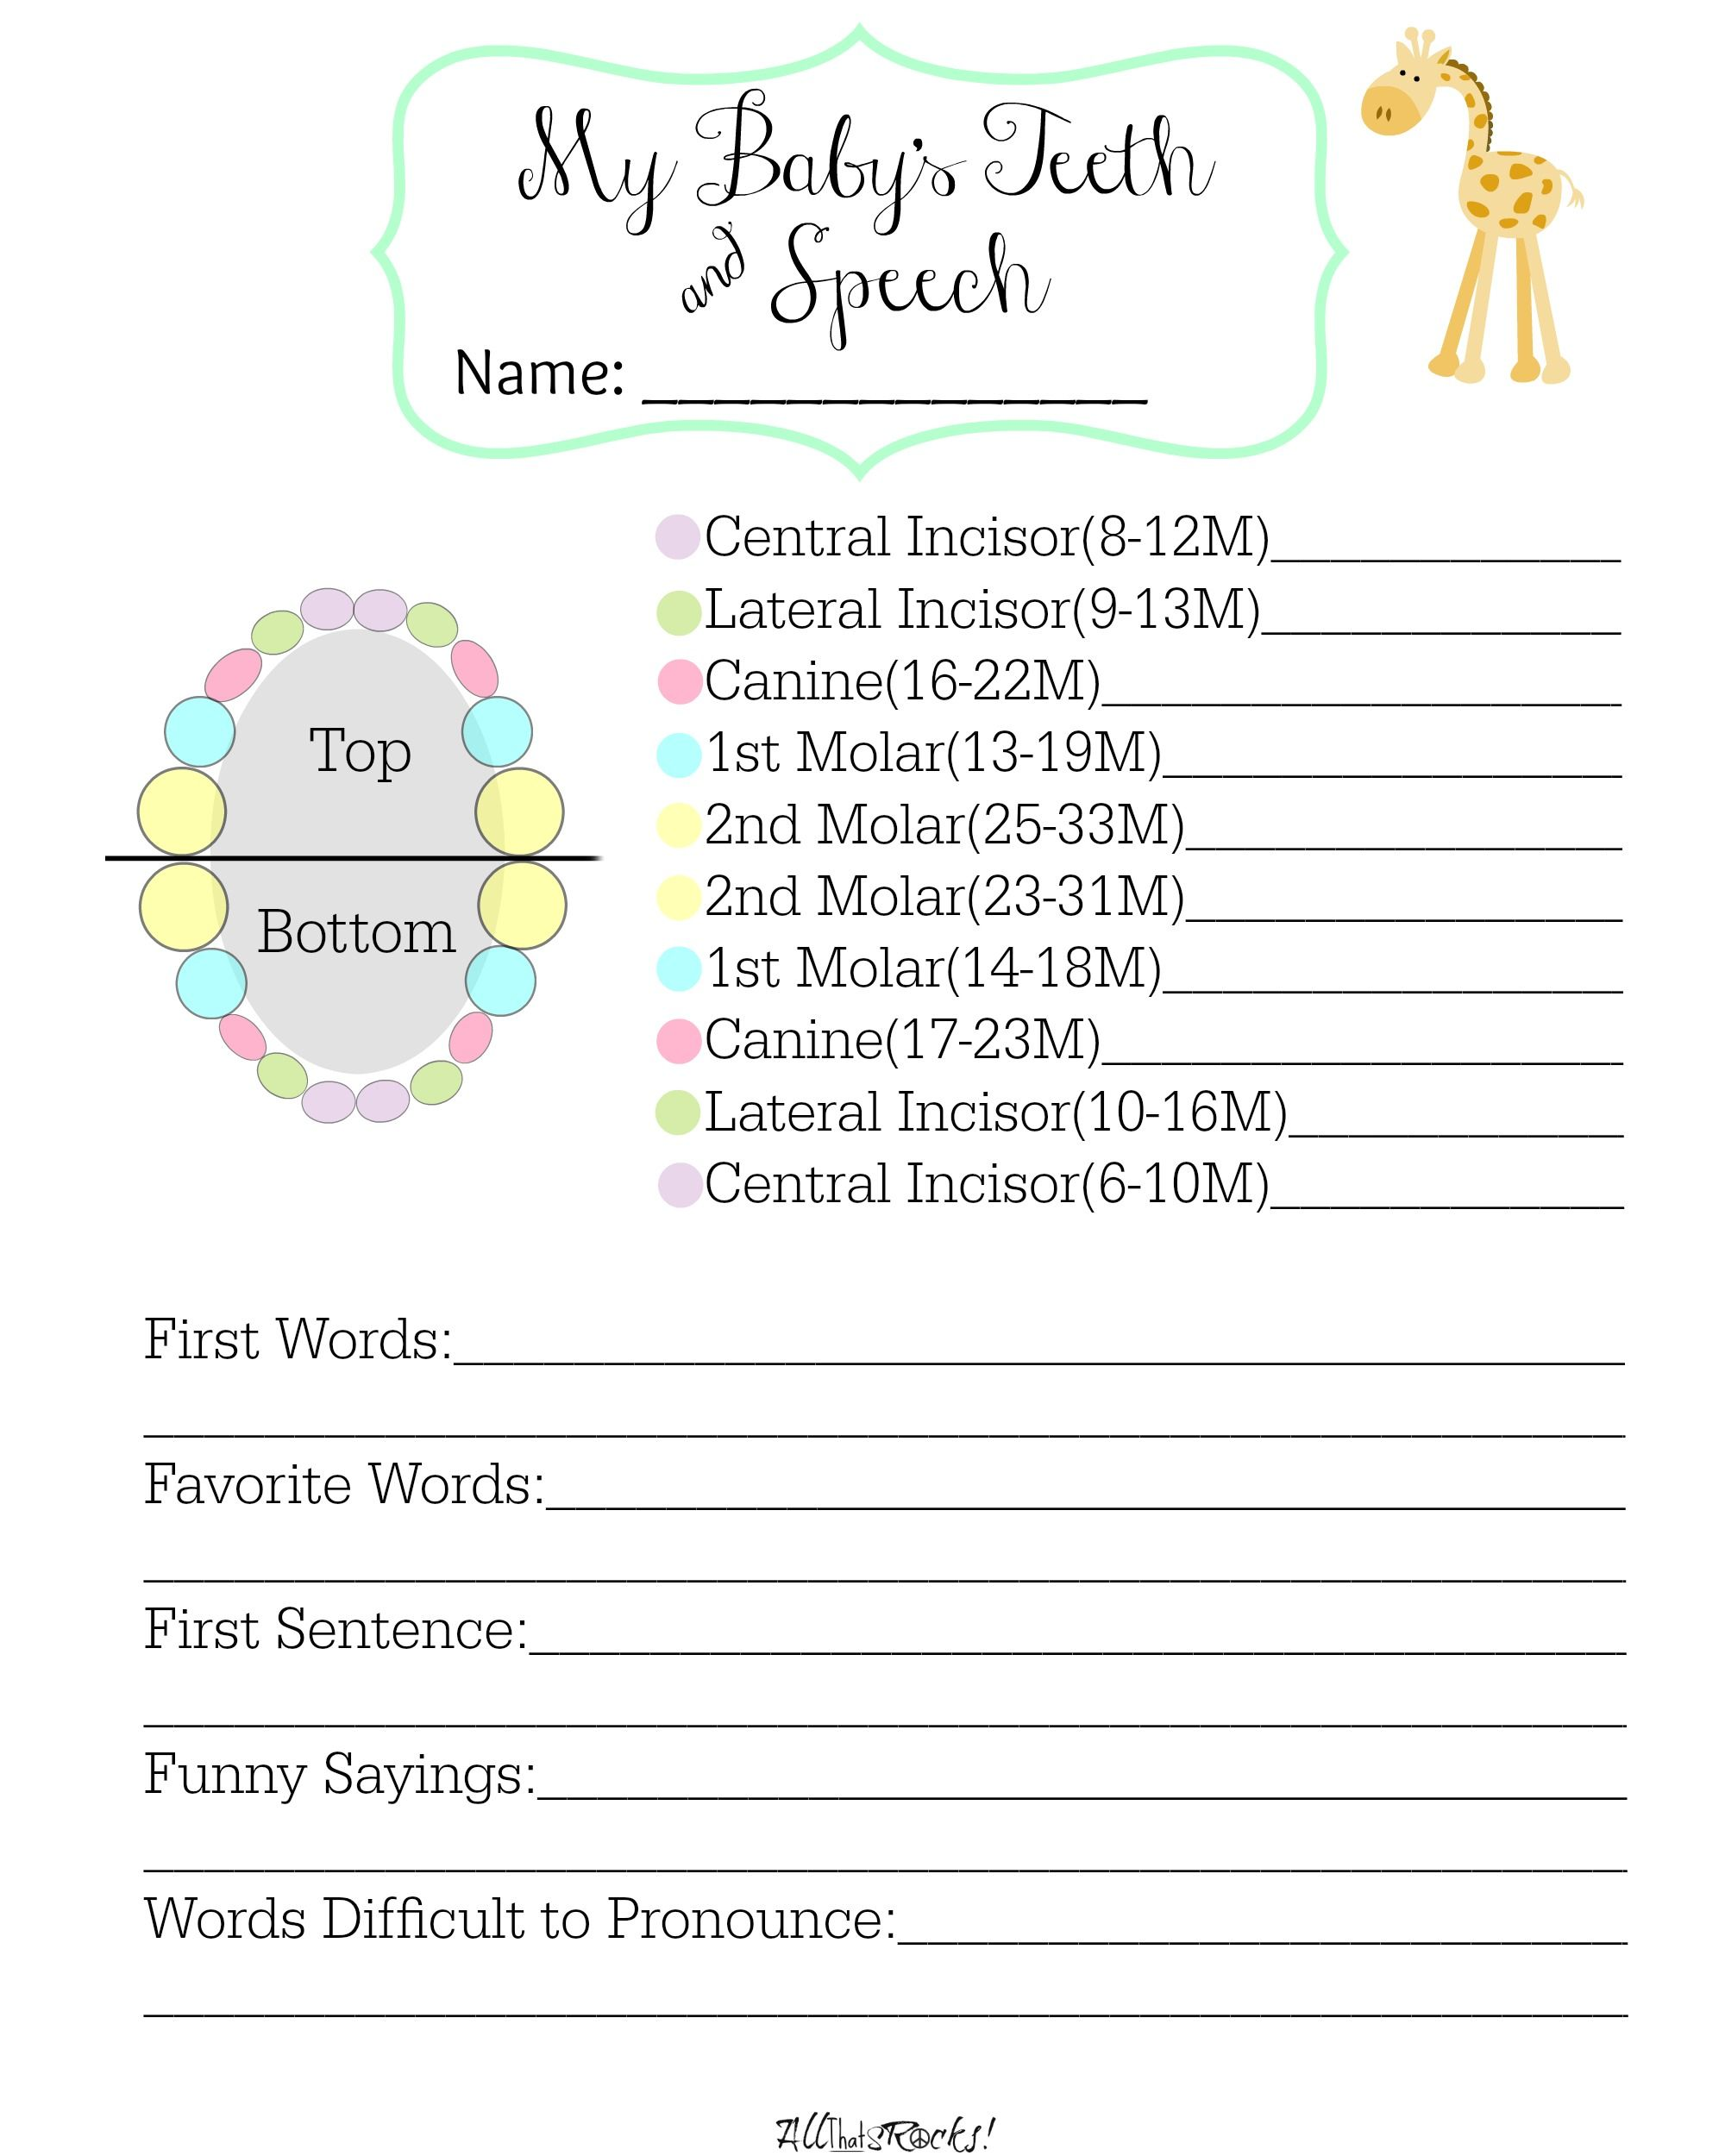 Track Baby S Teeth And Speech With This Free Printable